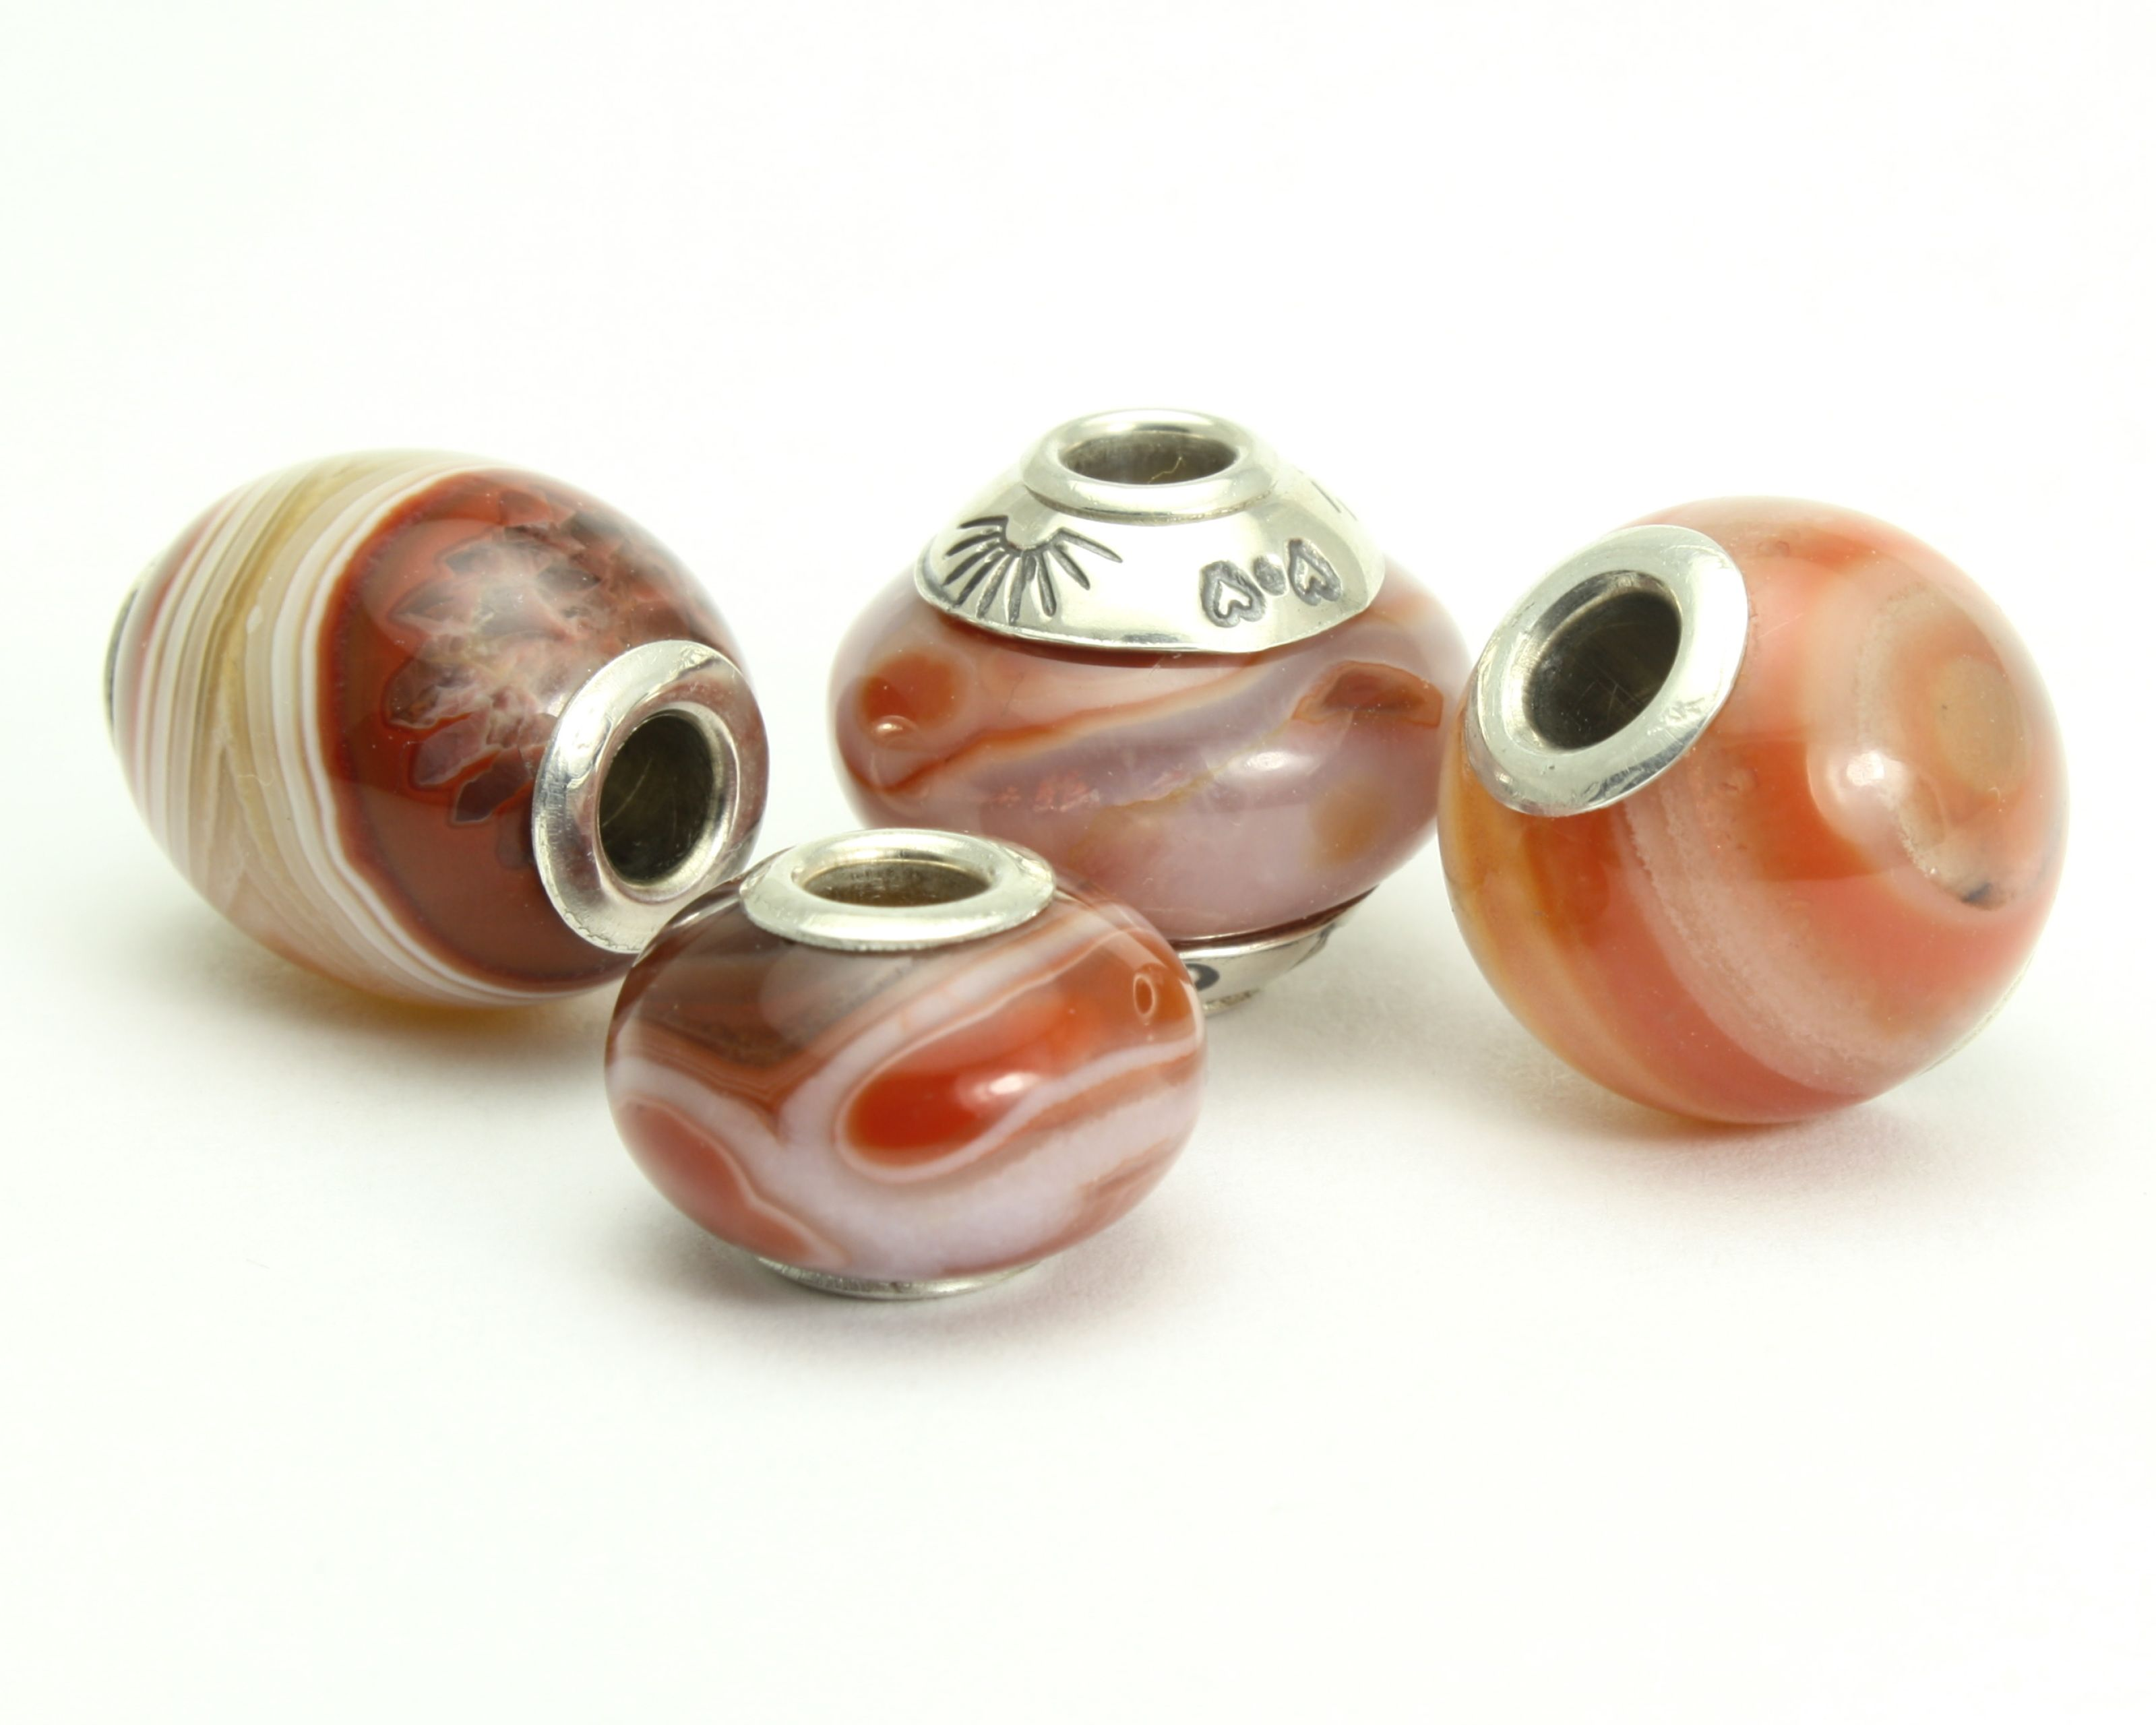 """PREMIUM.Released May 2016.This Lake Superior Agate stone is said to be among the oldest agates in the world and isfound in Wisconsin, along the South Shore and the WesternUpper Peninsula. It can also be found in Michigan and Minnesotaalong the shores of Lake Superior, once named """"Gitche Gumee"""" byHenry Wadsworth Longfellow in his """"Song of Hiawatha"""".No two agates are the same. These are true stunners!NOW AVAILABLE IN A NEW SHAPE - The Marblettes! Theseperfectly round ..."""